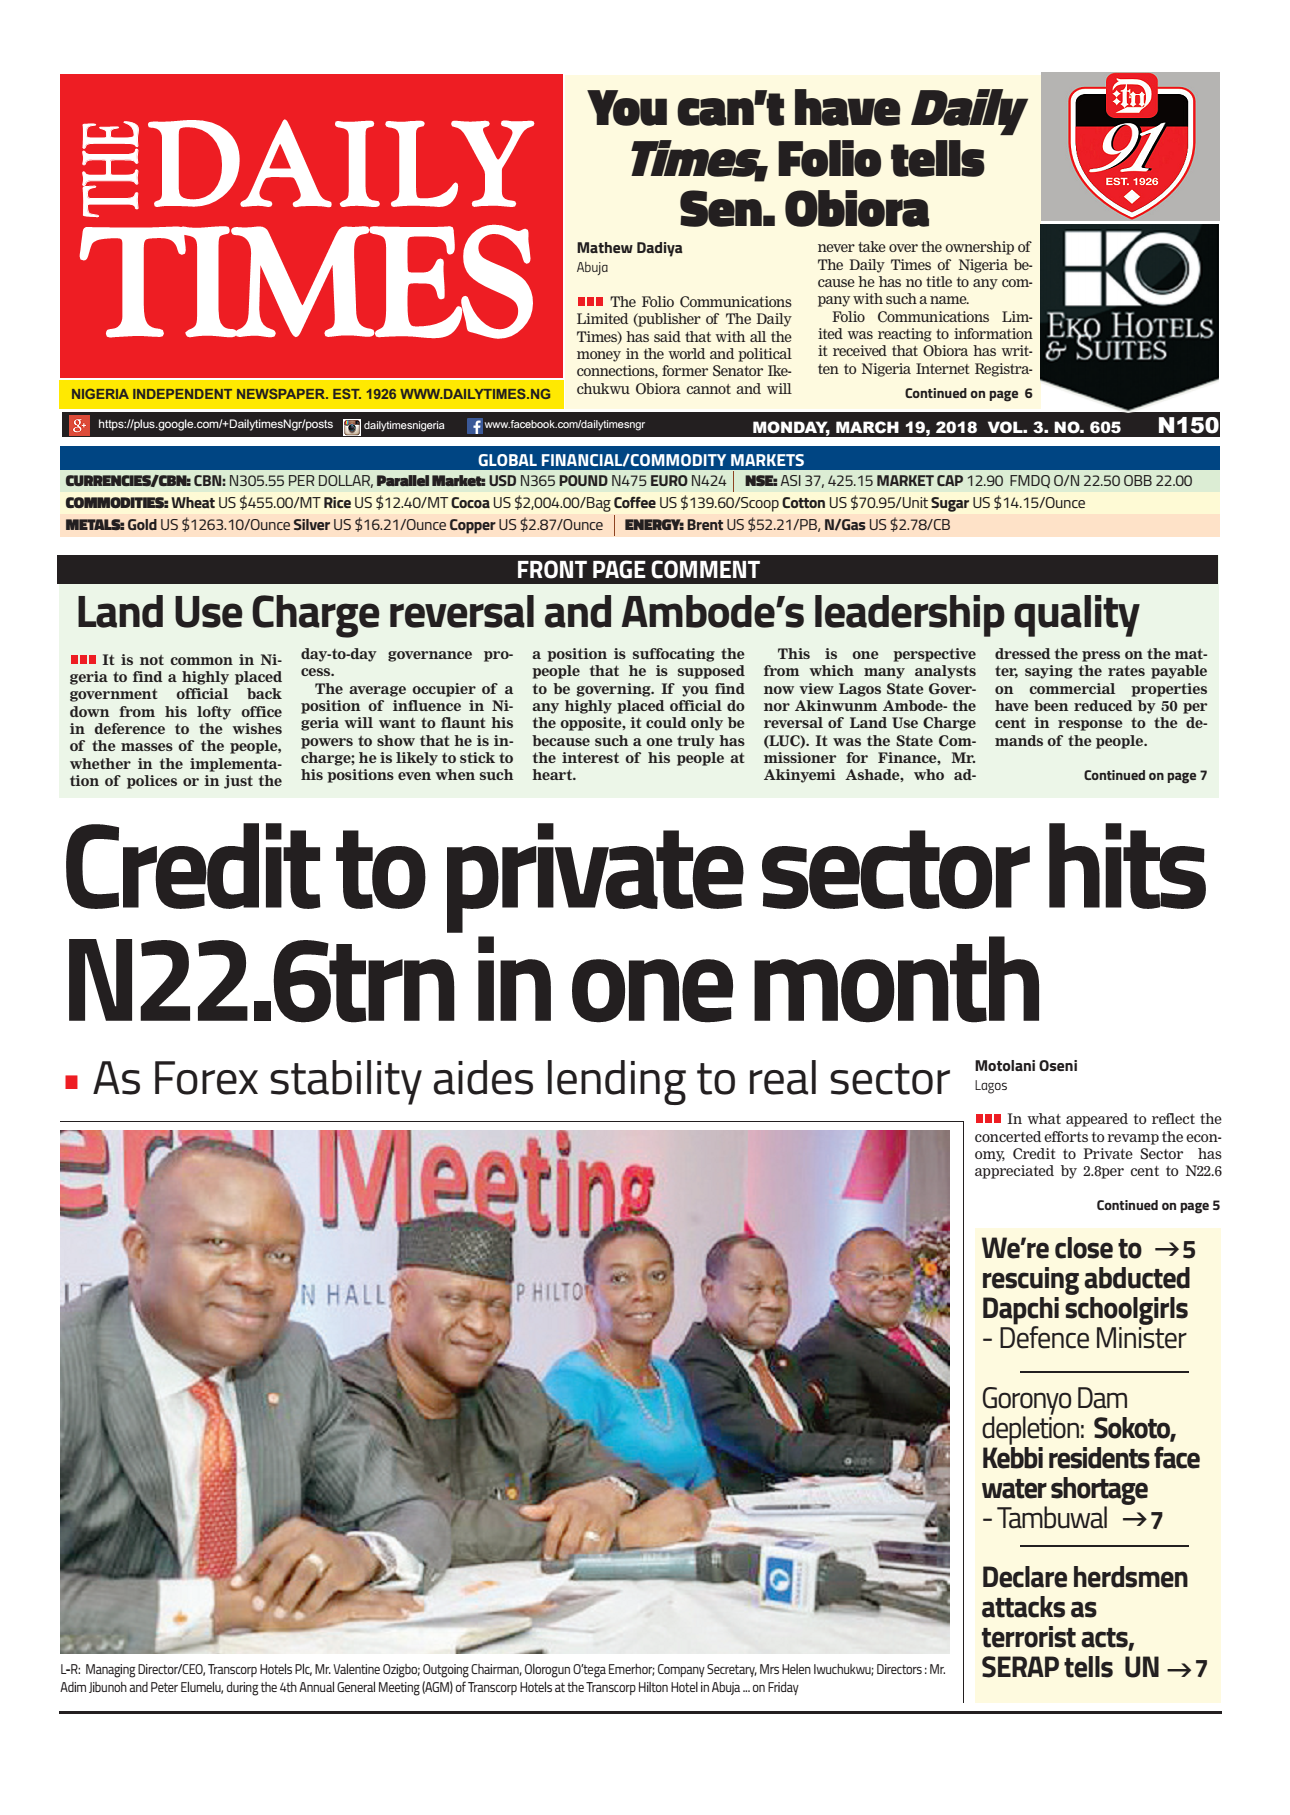 Daily Times Newspaper, Monday, March 19, 2018